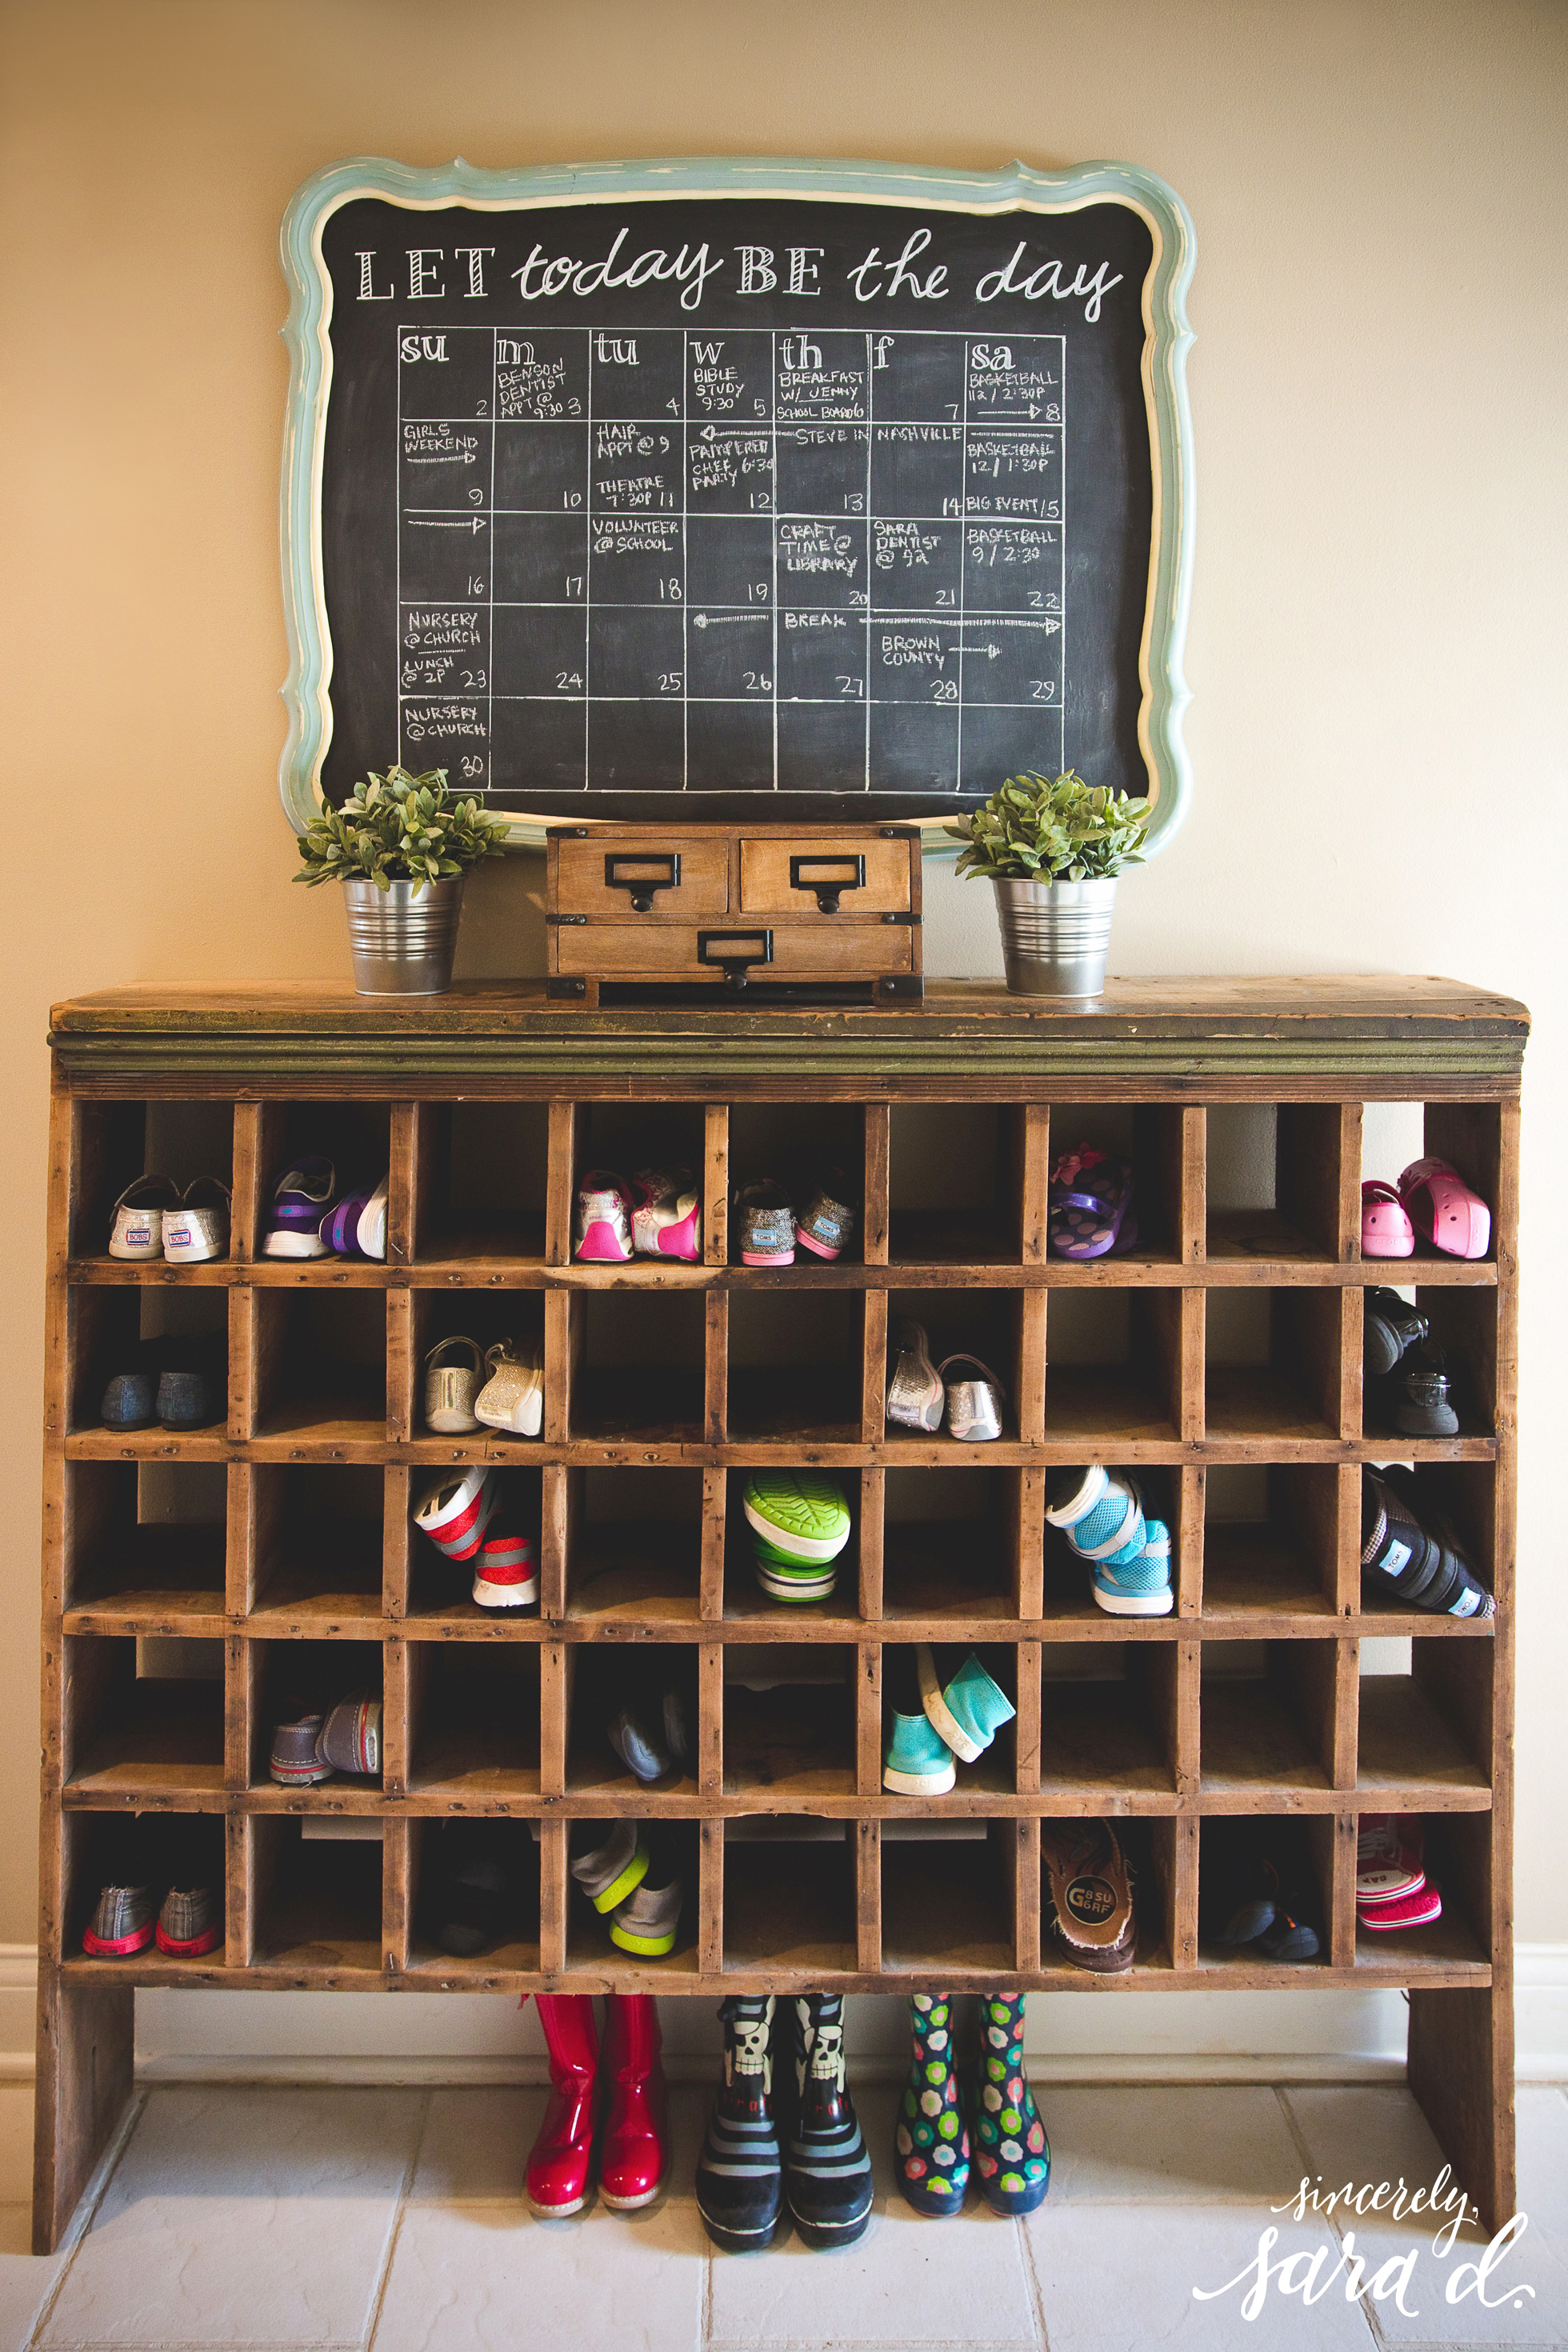 Shoe storage cubbies in a home's entry